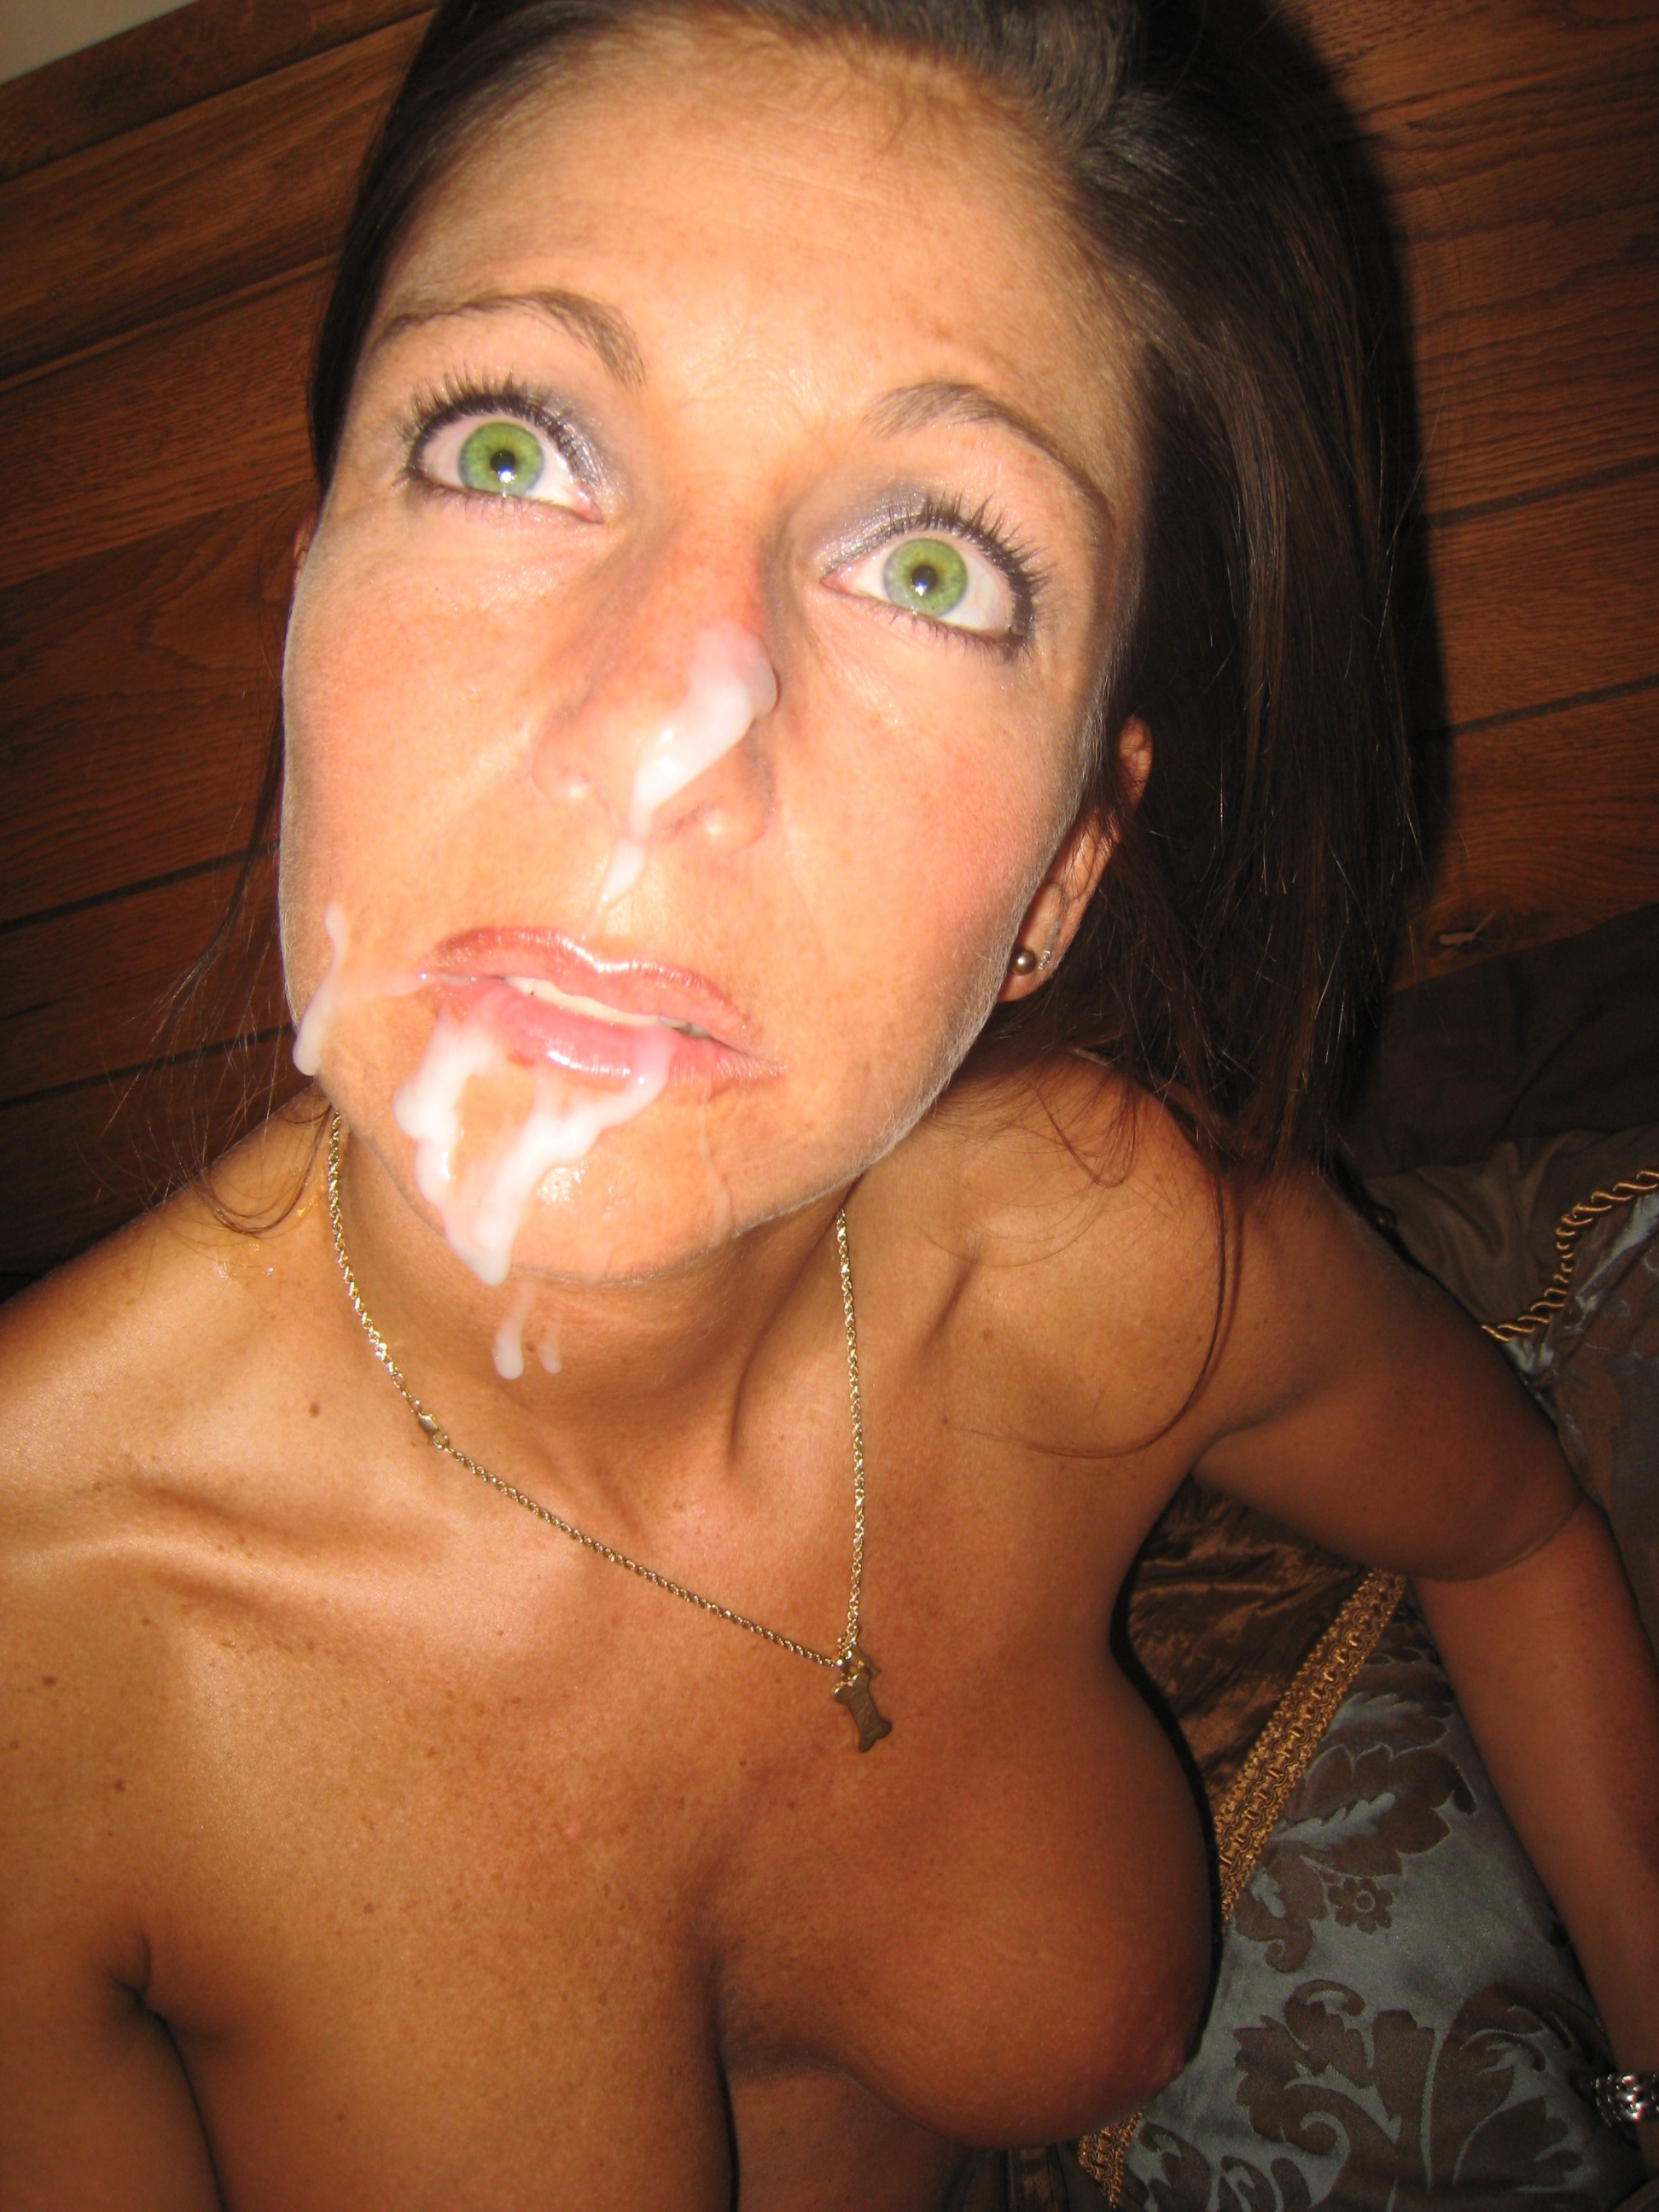 Bomb! hot milf cum slut Damn....just how